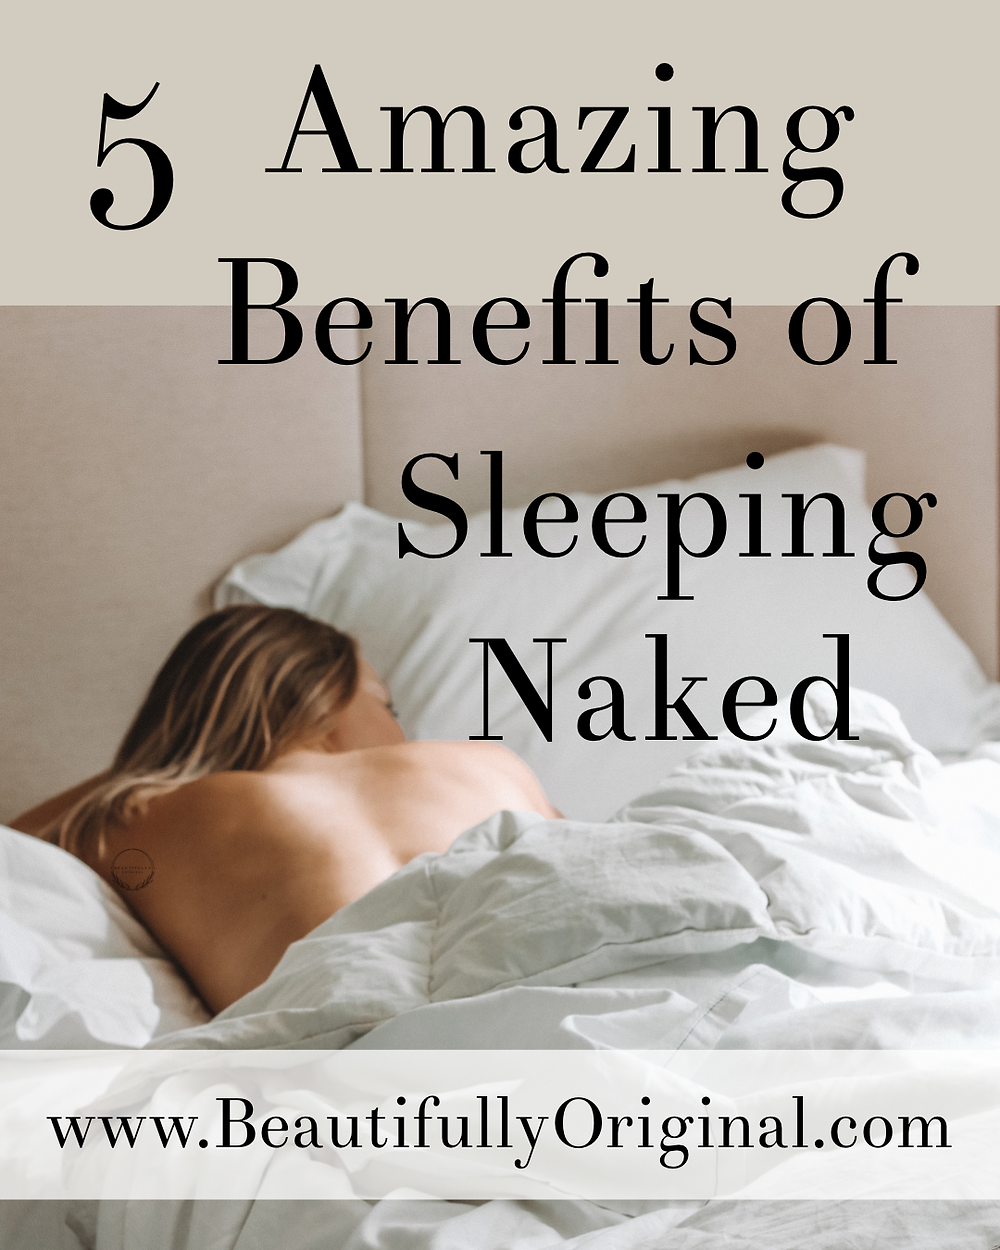 a woman happily sleeping naked and the words saying 5 Amazing Benefits of Sleeping Naked. at the bottom of the picture in the link to www.beautifullyoriginal.com